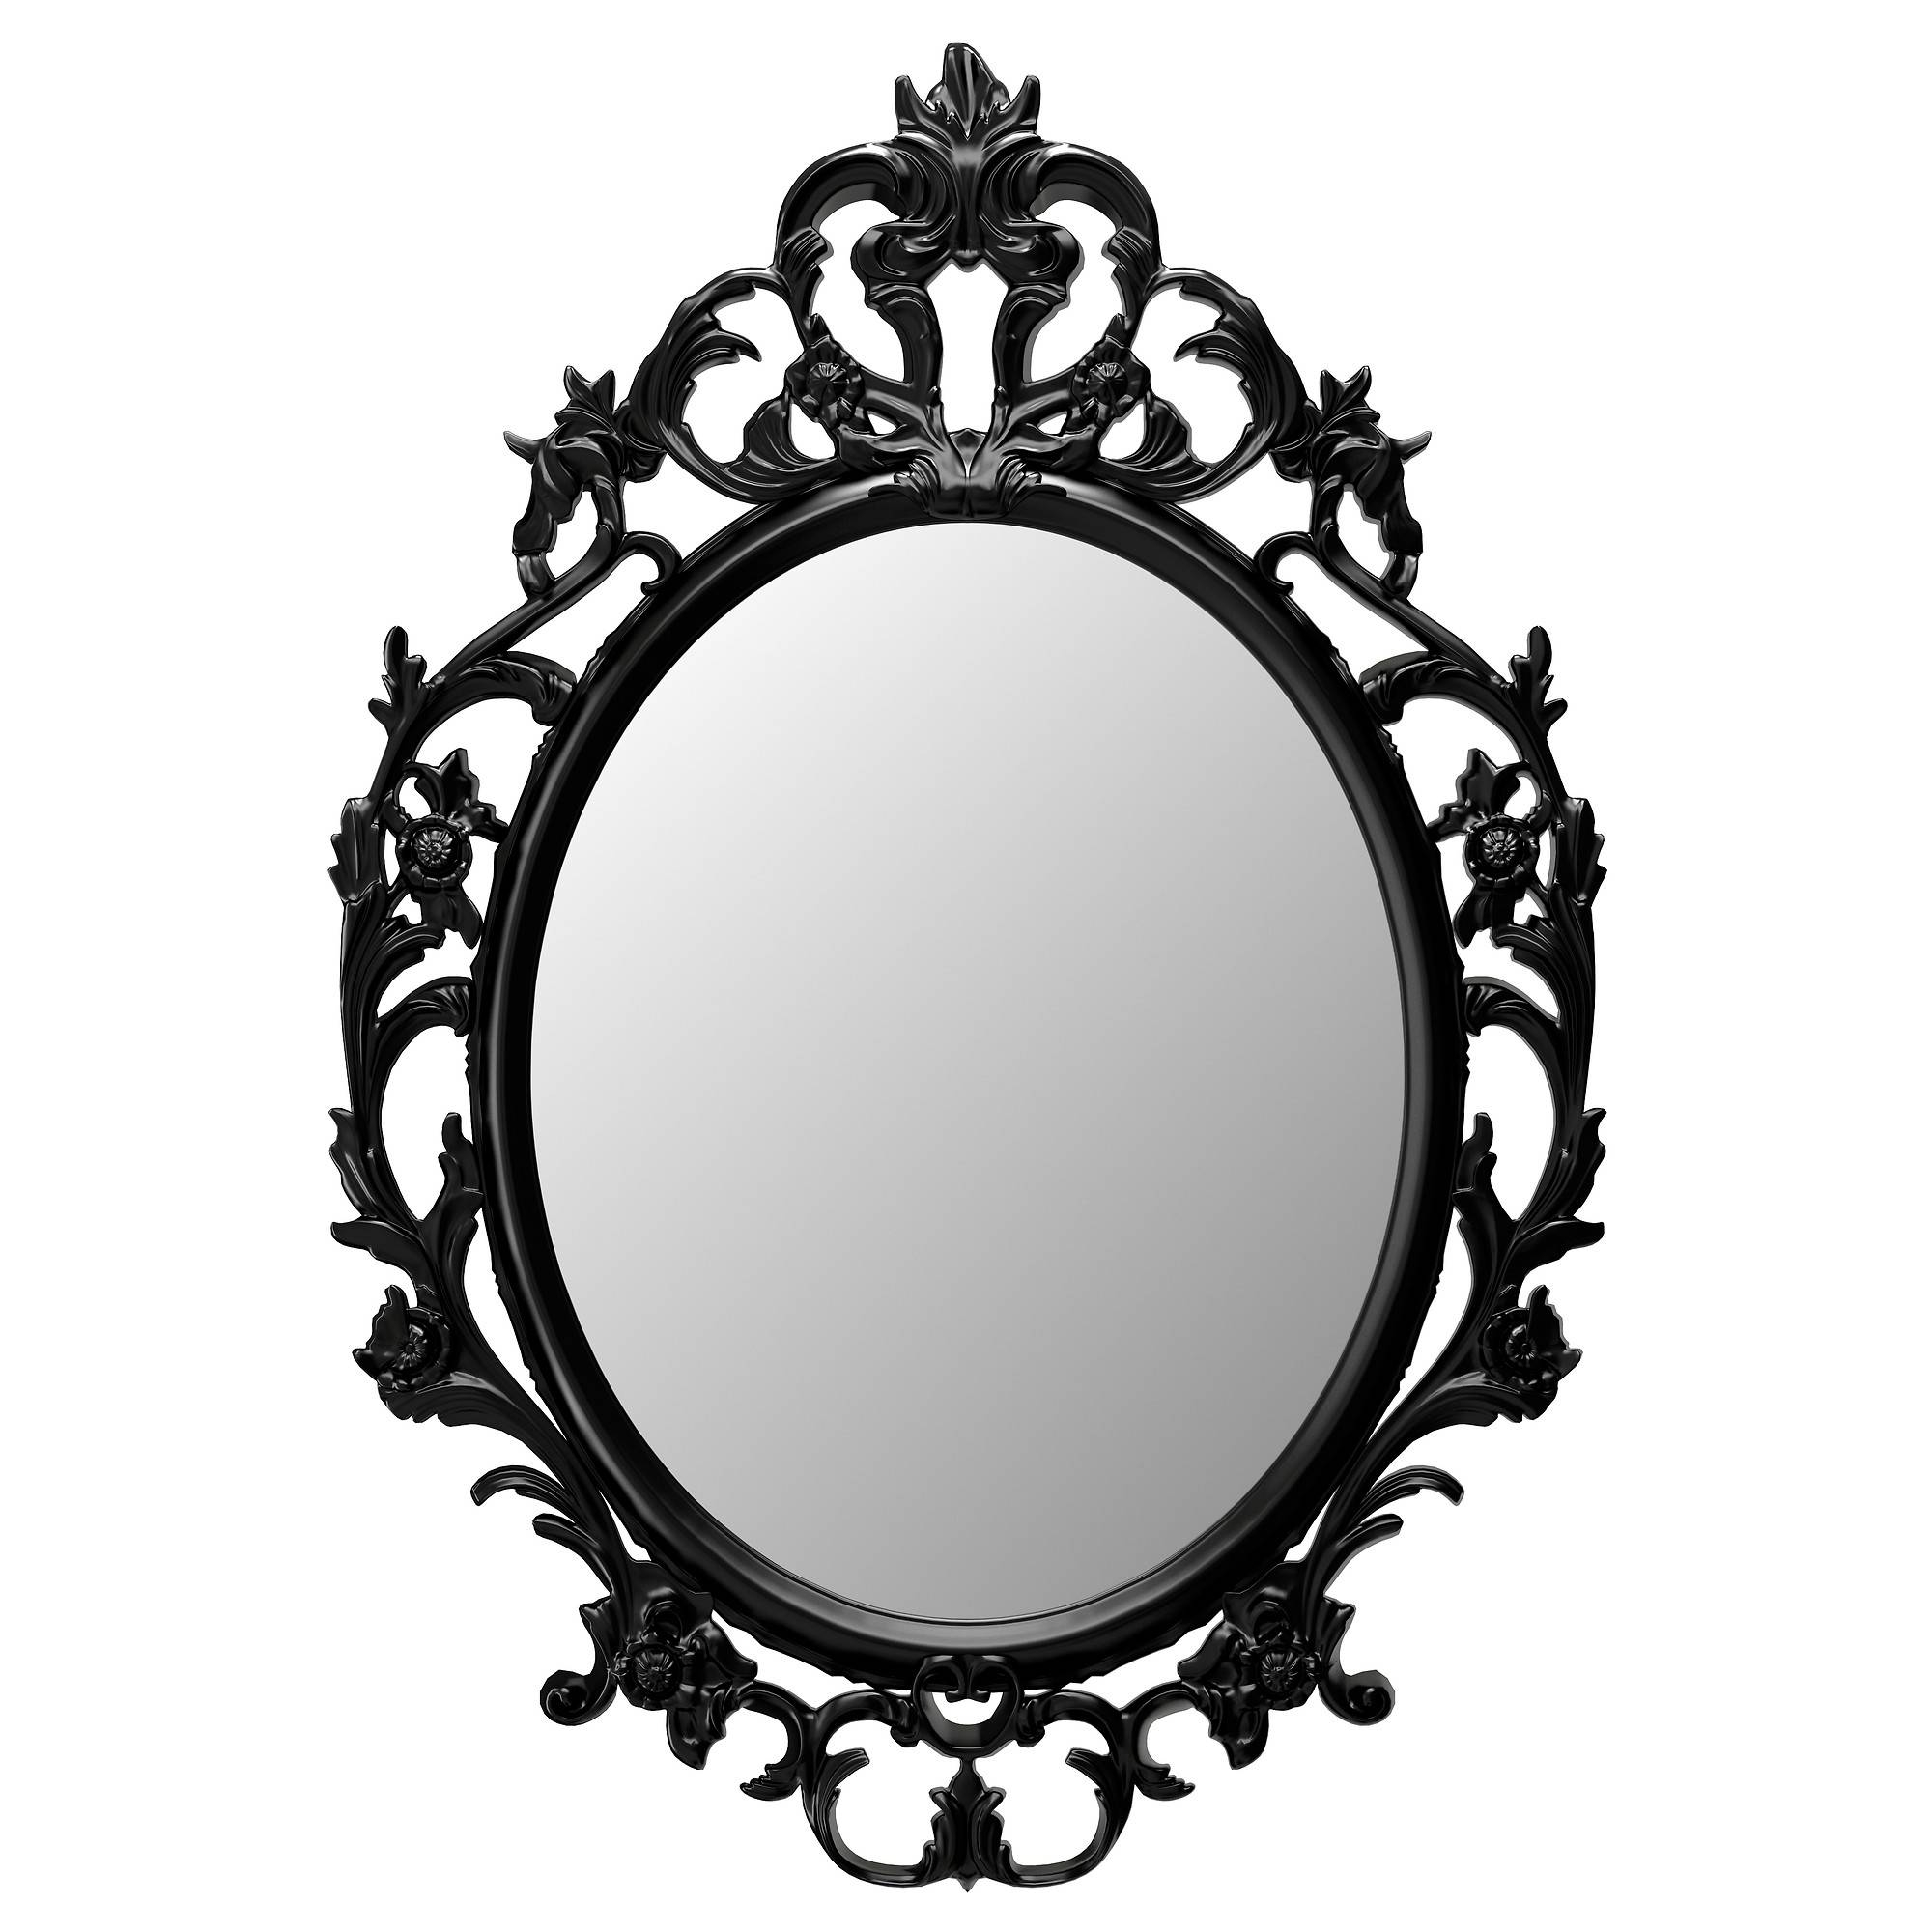 Popular Photo of Black Oval Mirrors